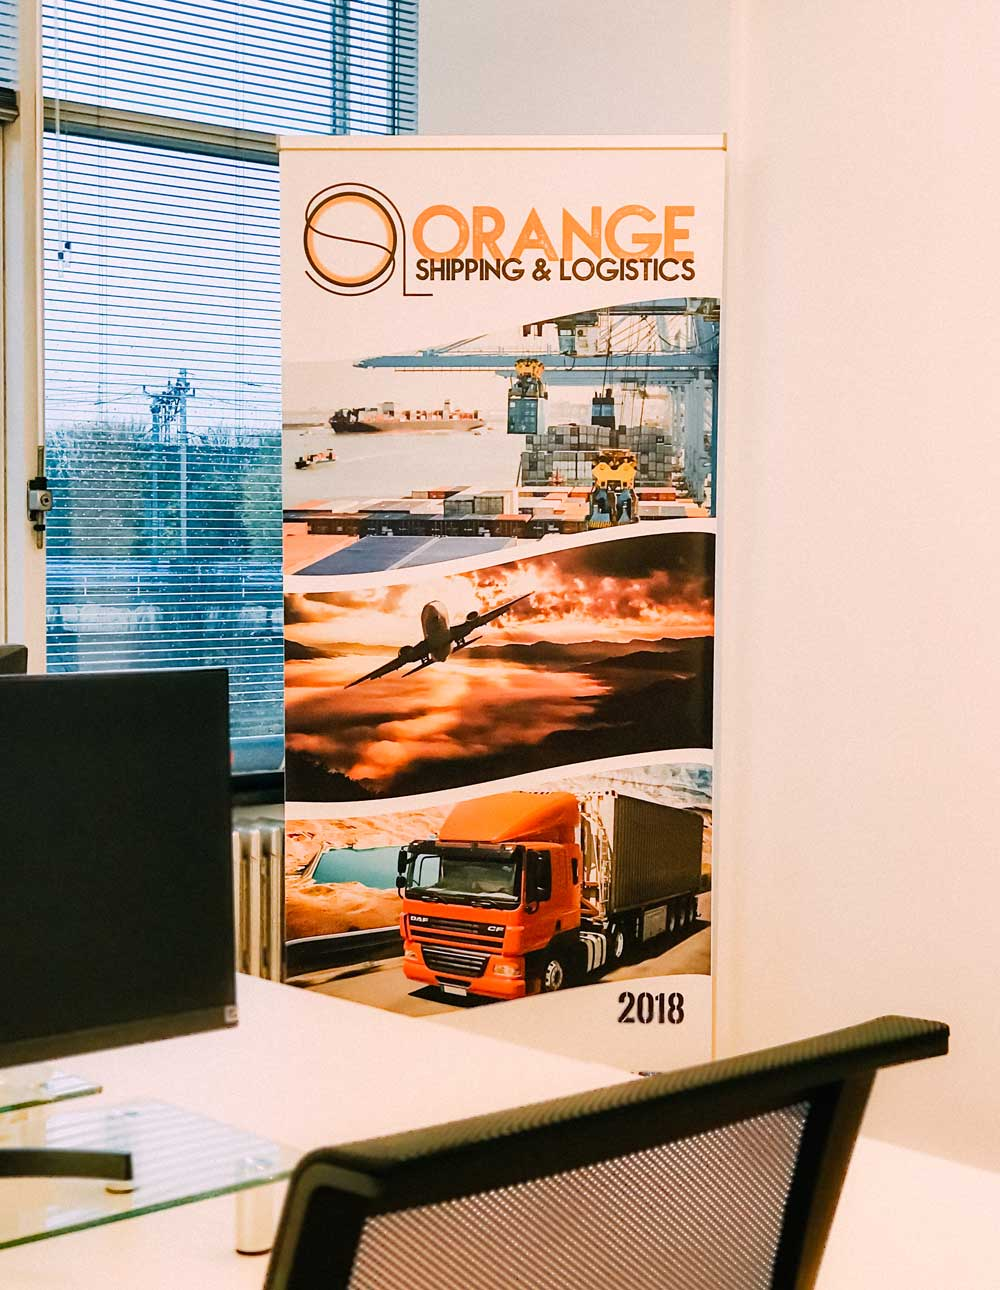 Orange Shipping and Logistics at Van Nelle Factory